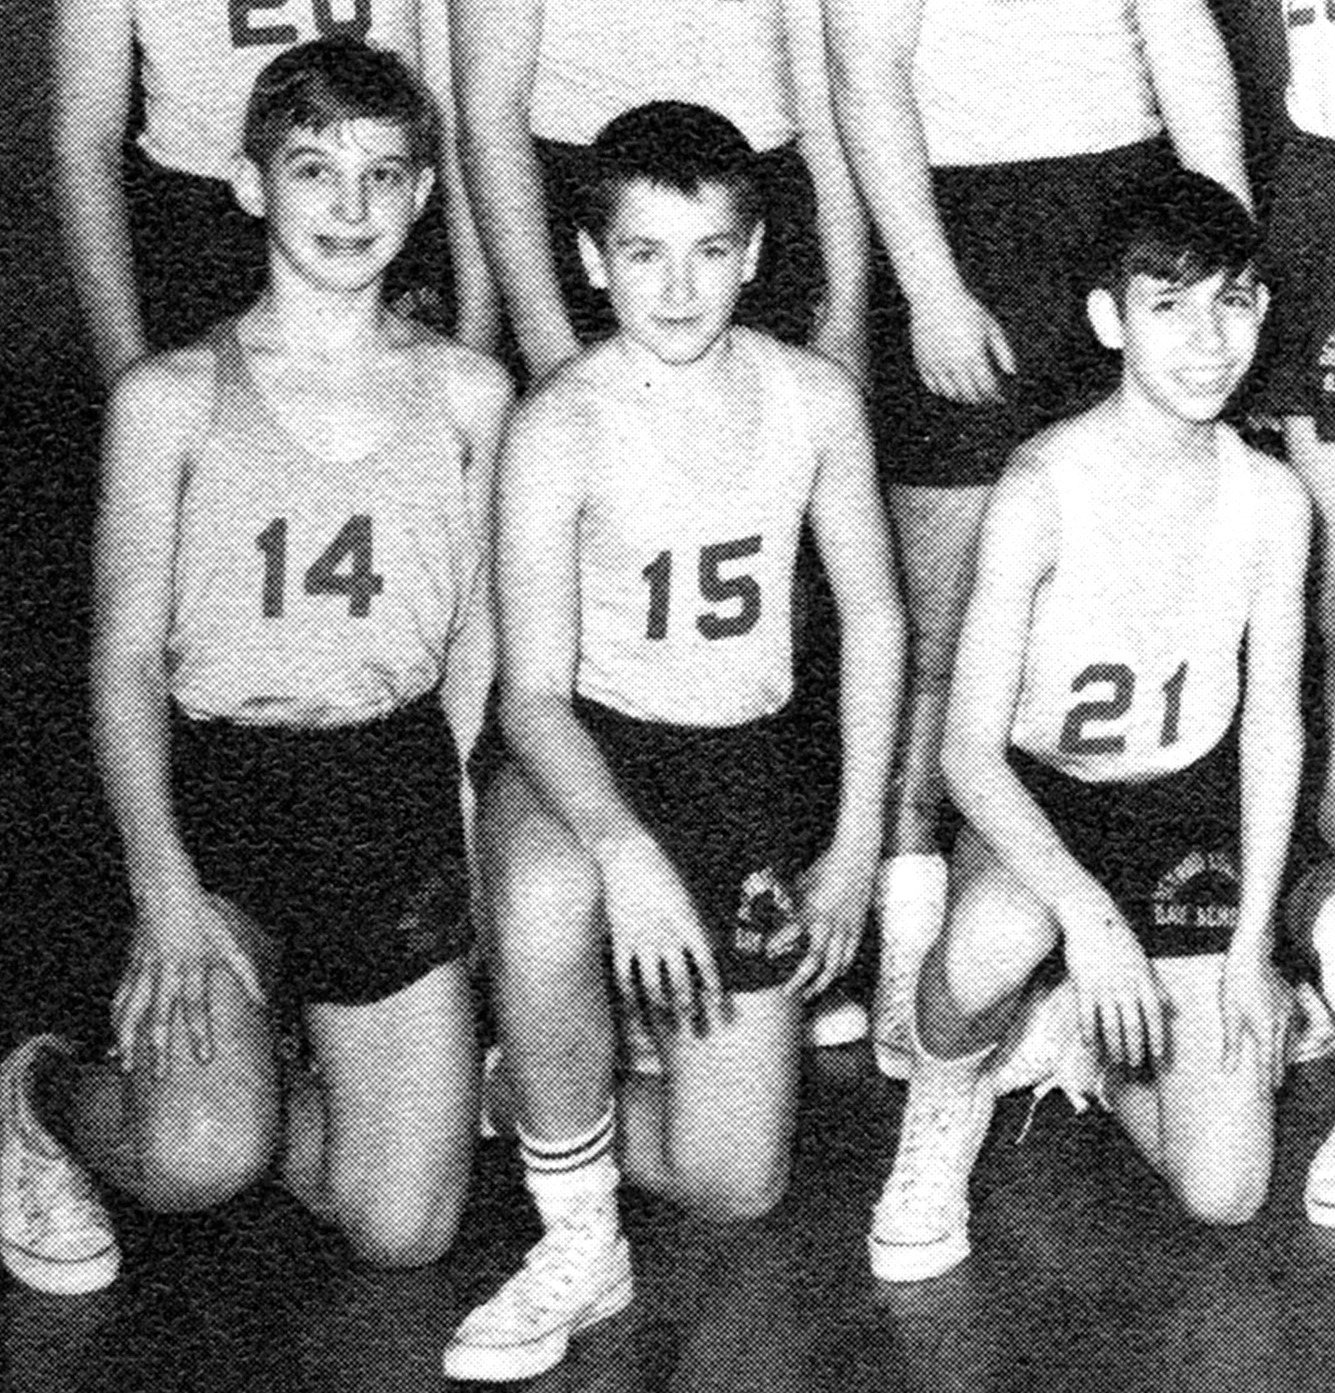 In the 8th grade, Robin Williams, #15, played on the basketball team at Detroit Country Day School.